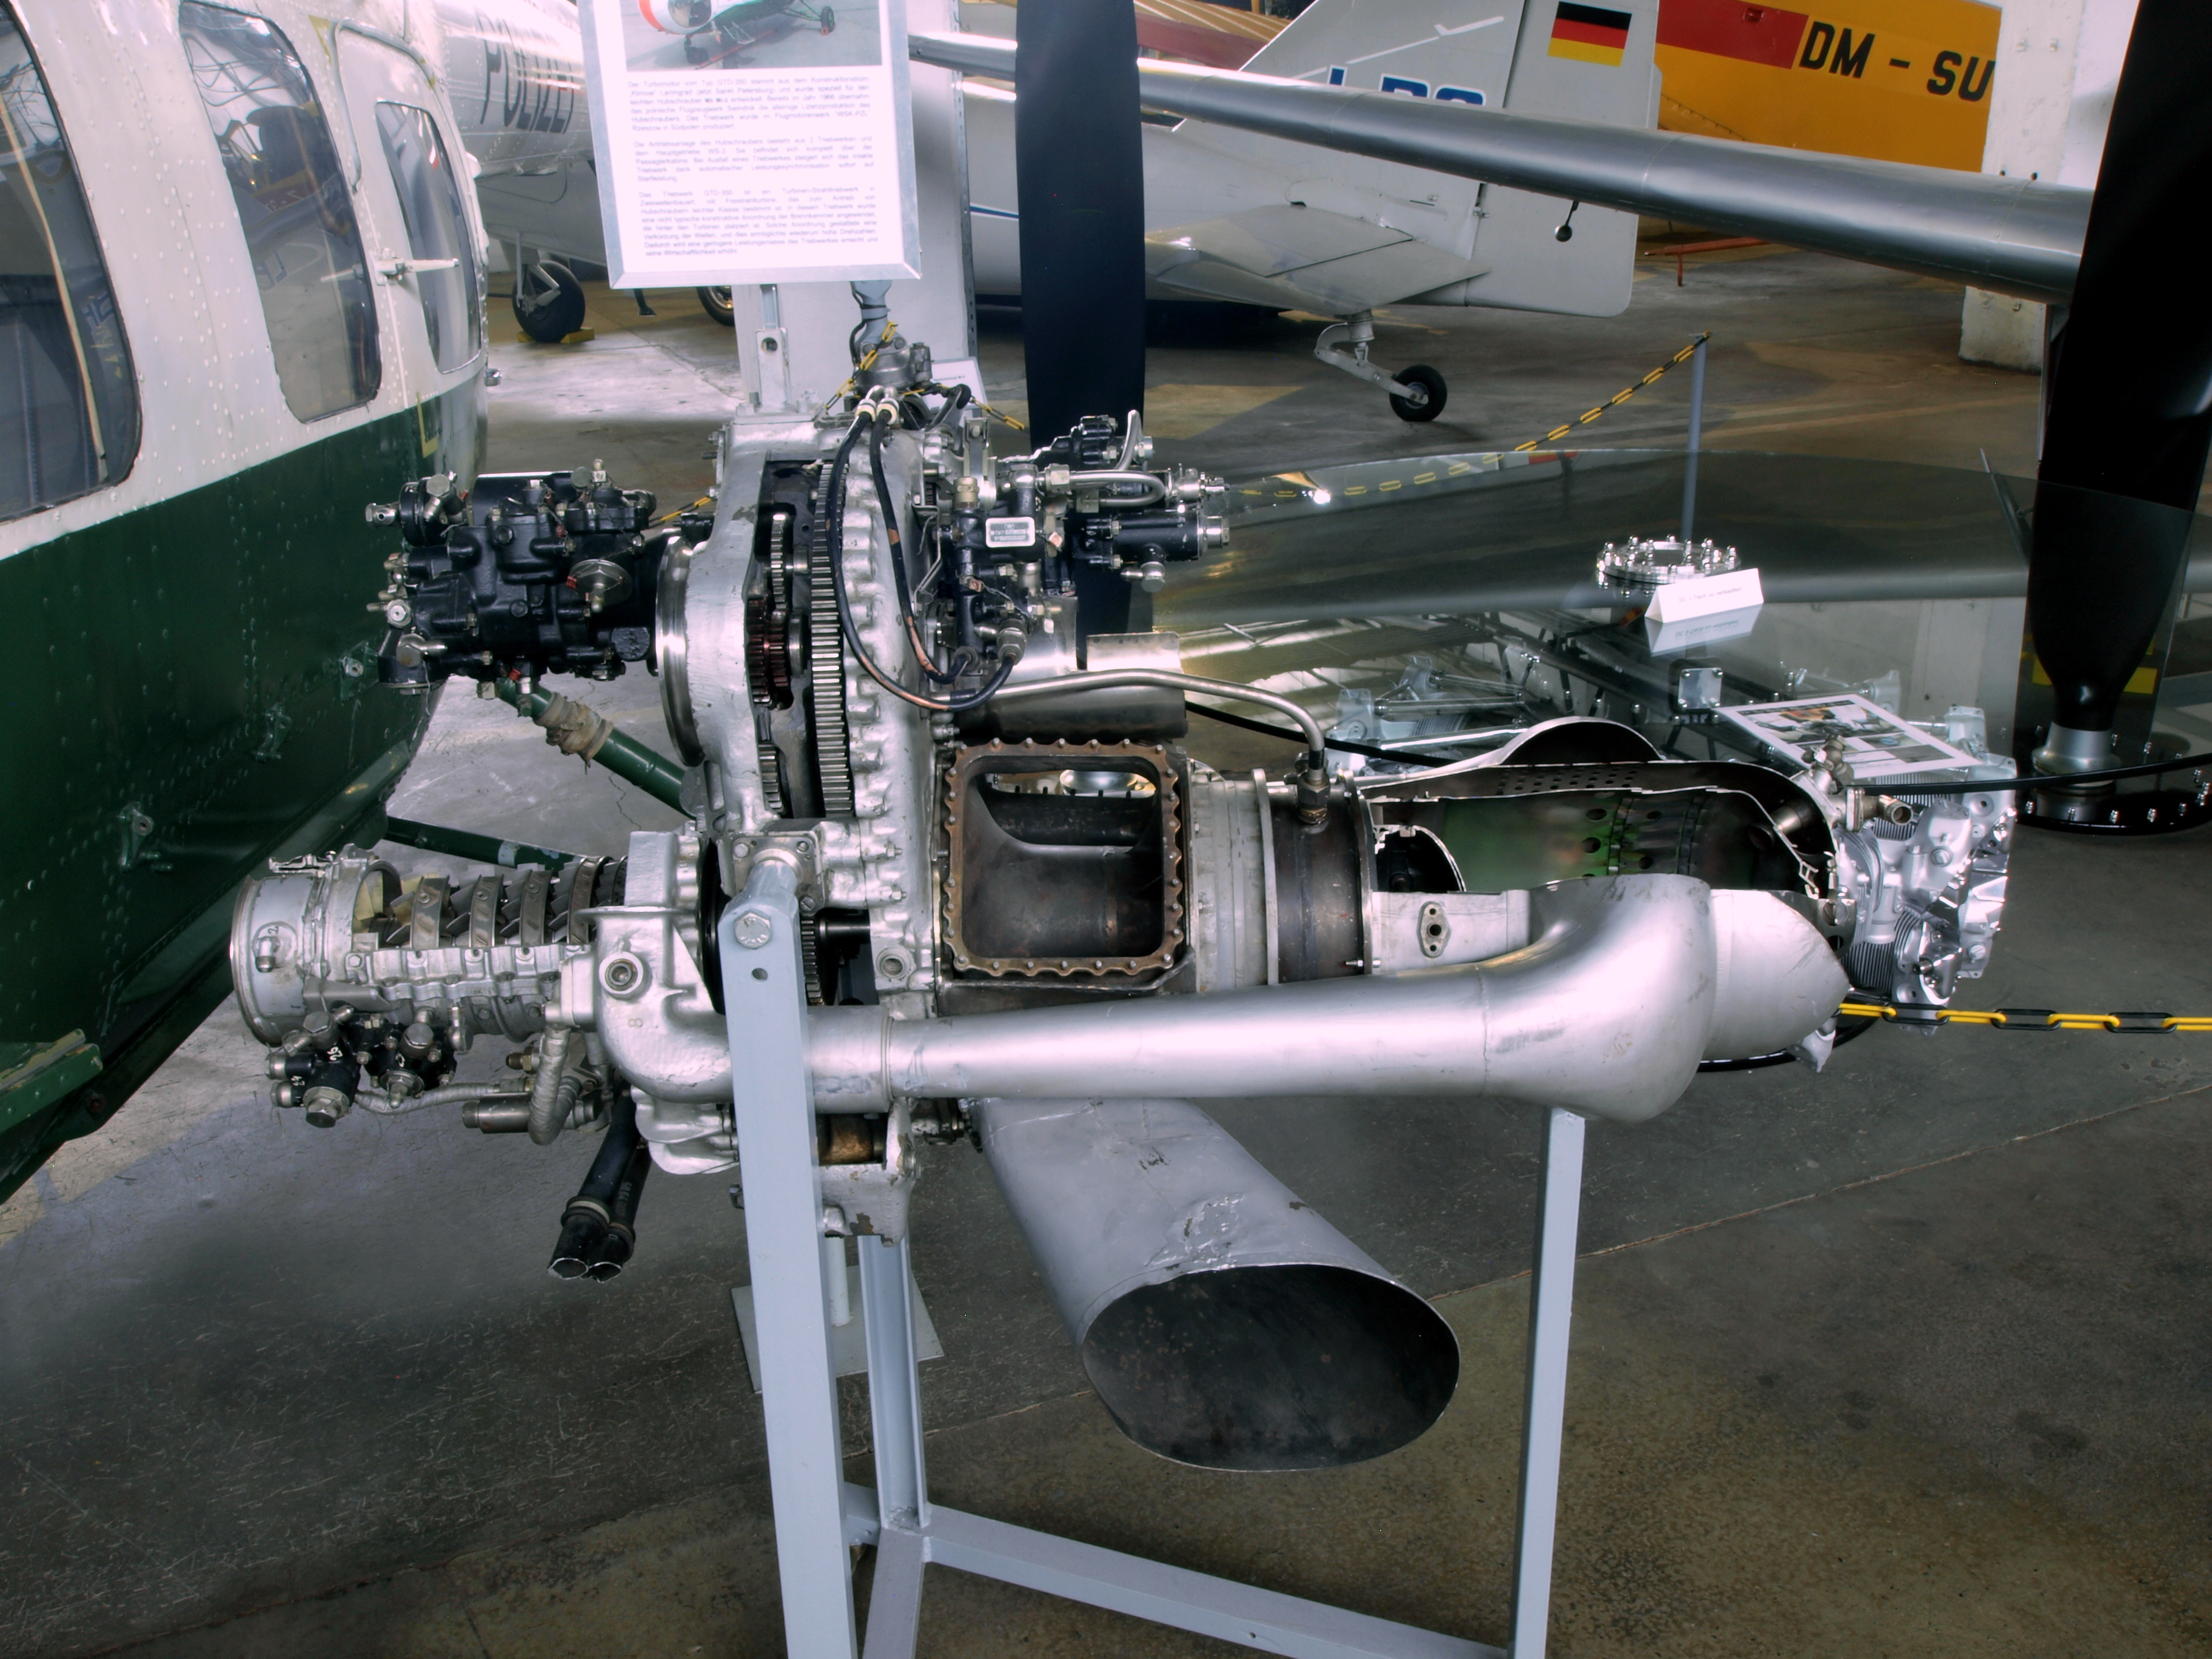 hirobo helicopter with File Gtd 350 Mil Mi 2 Helicopter Engine on Watch as well Index php together with Part VA 18 9 besides Bell UH 1N Twin Huey additionally Bell47ModelsGallery.